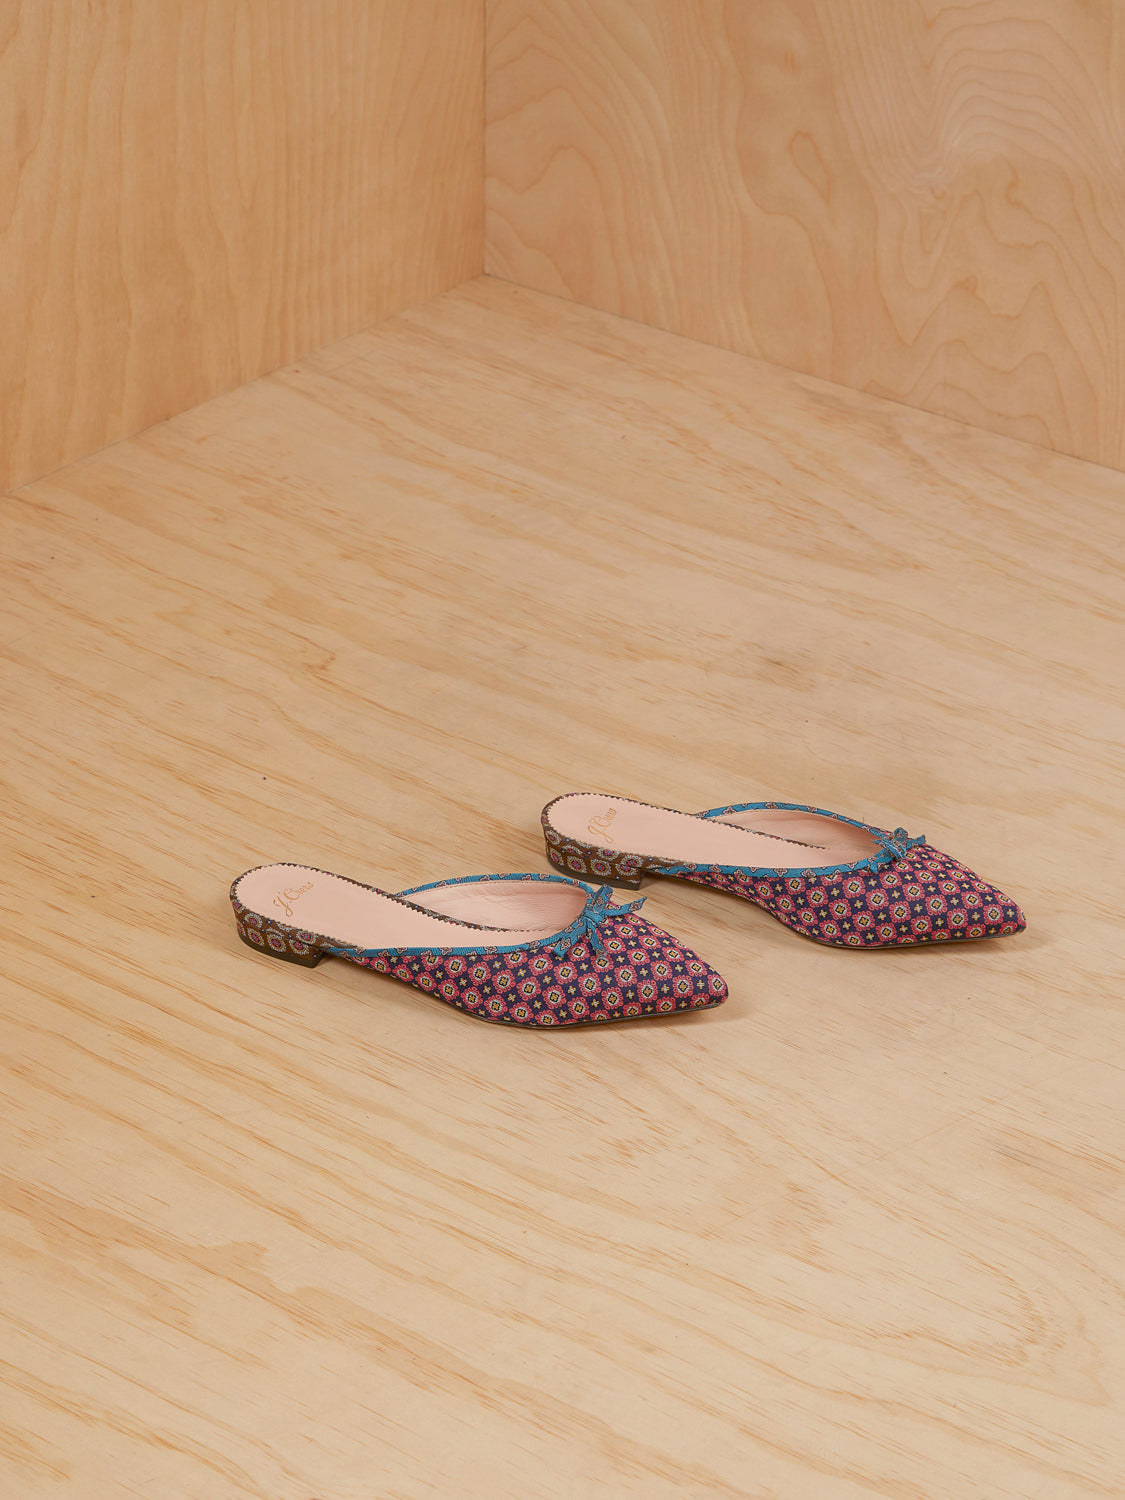 J Crew Patterned Pointed Slides